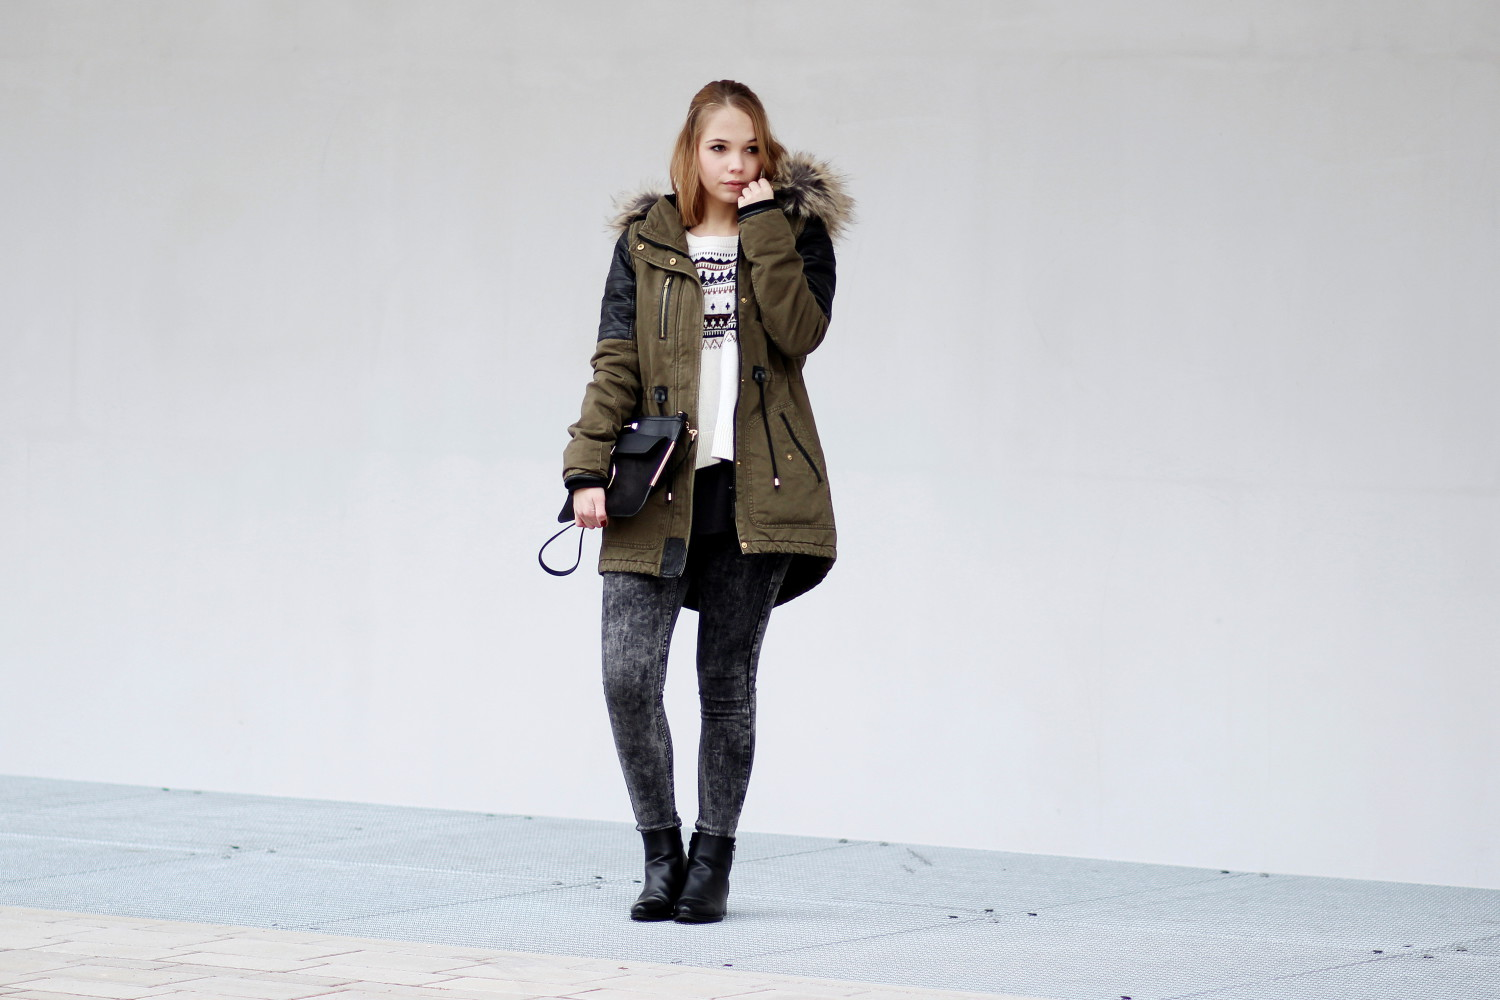 bezauberndenana-fashionblog-outfit-streetstyle-winteroutfit-parka-norwegerpullover-casual (2)